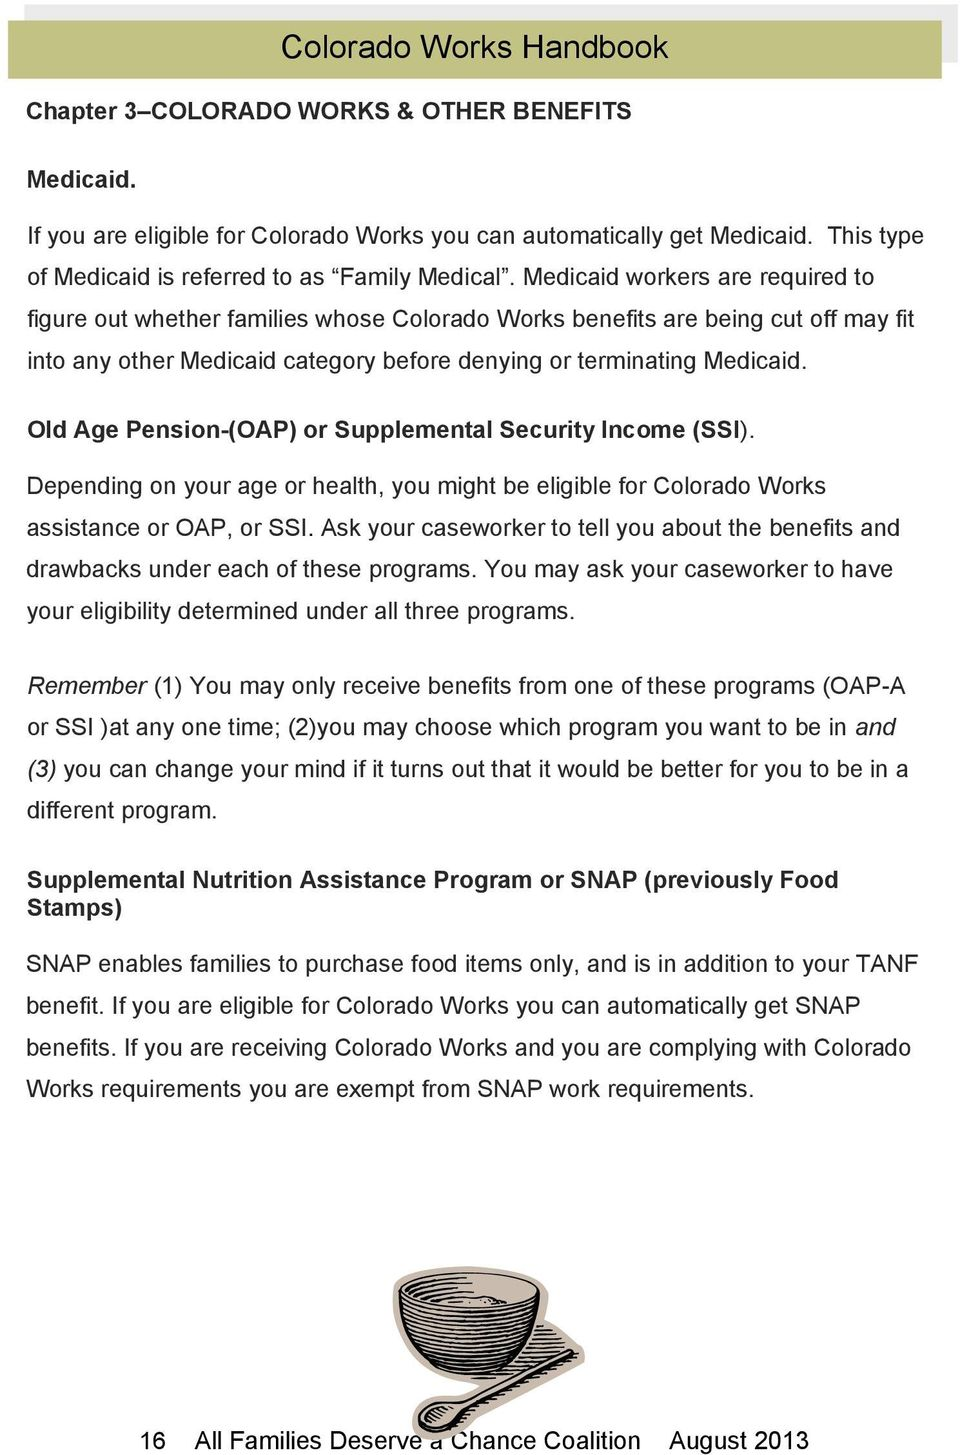 Old Age Pension-(OAP) or Supplemental Security Income (SSI). Depending on your age or health, you might be eligible for Colorado Works assistance or OAP, or SSI.